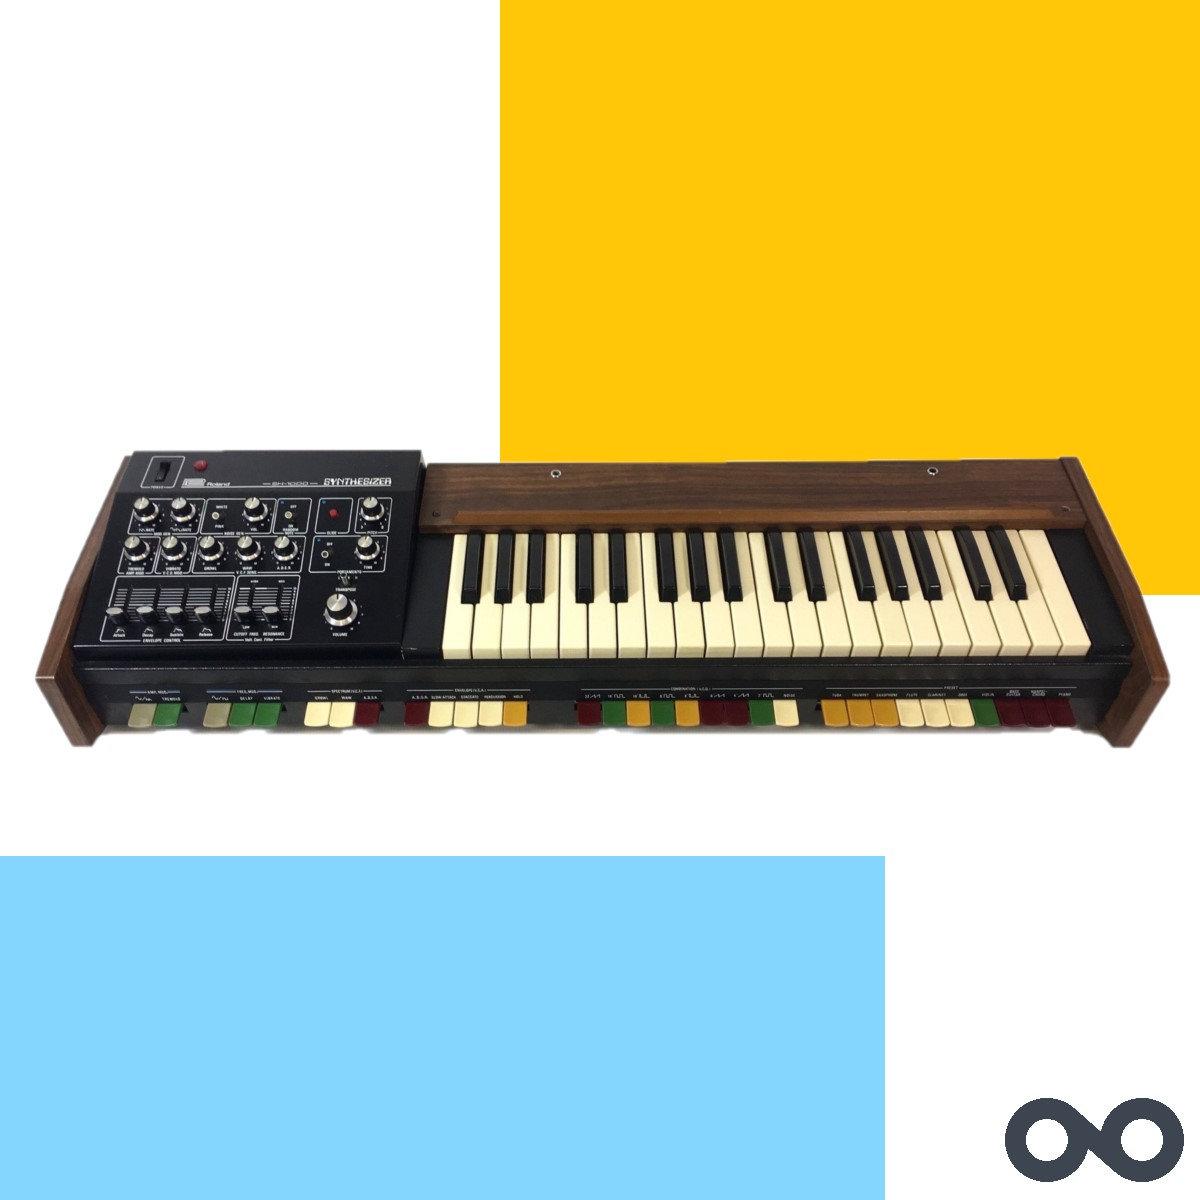 #ThrowbackThursday Back to 1973 this week with Roland's first ever synth, the SH-1000! Thoughts on this one?